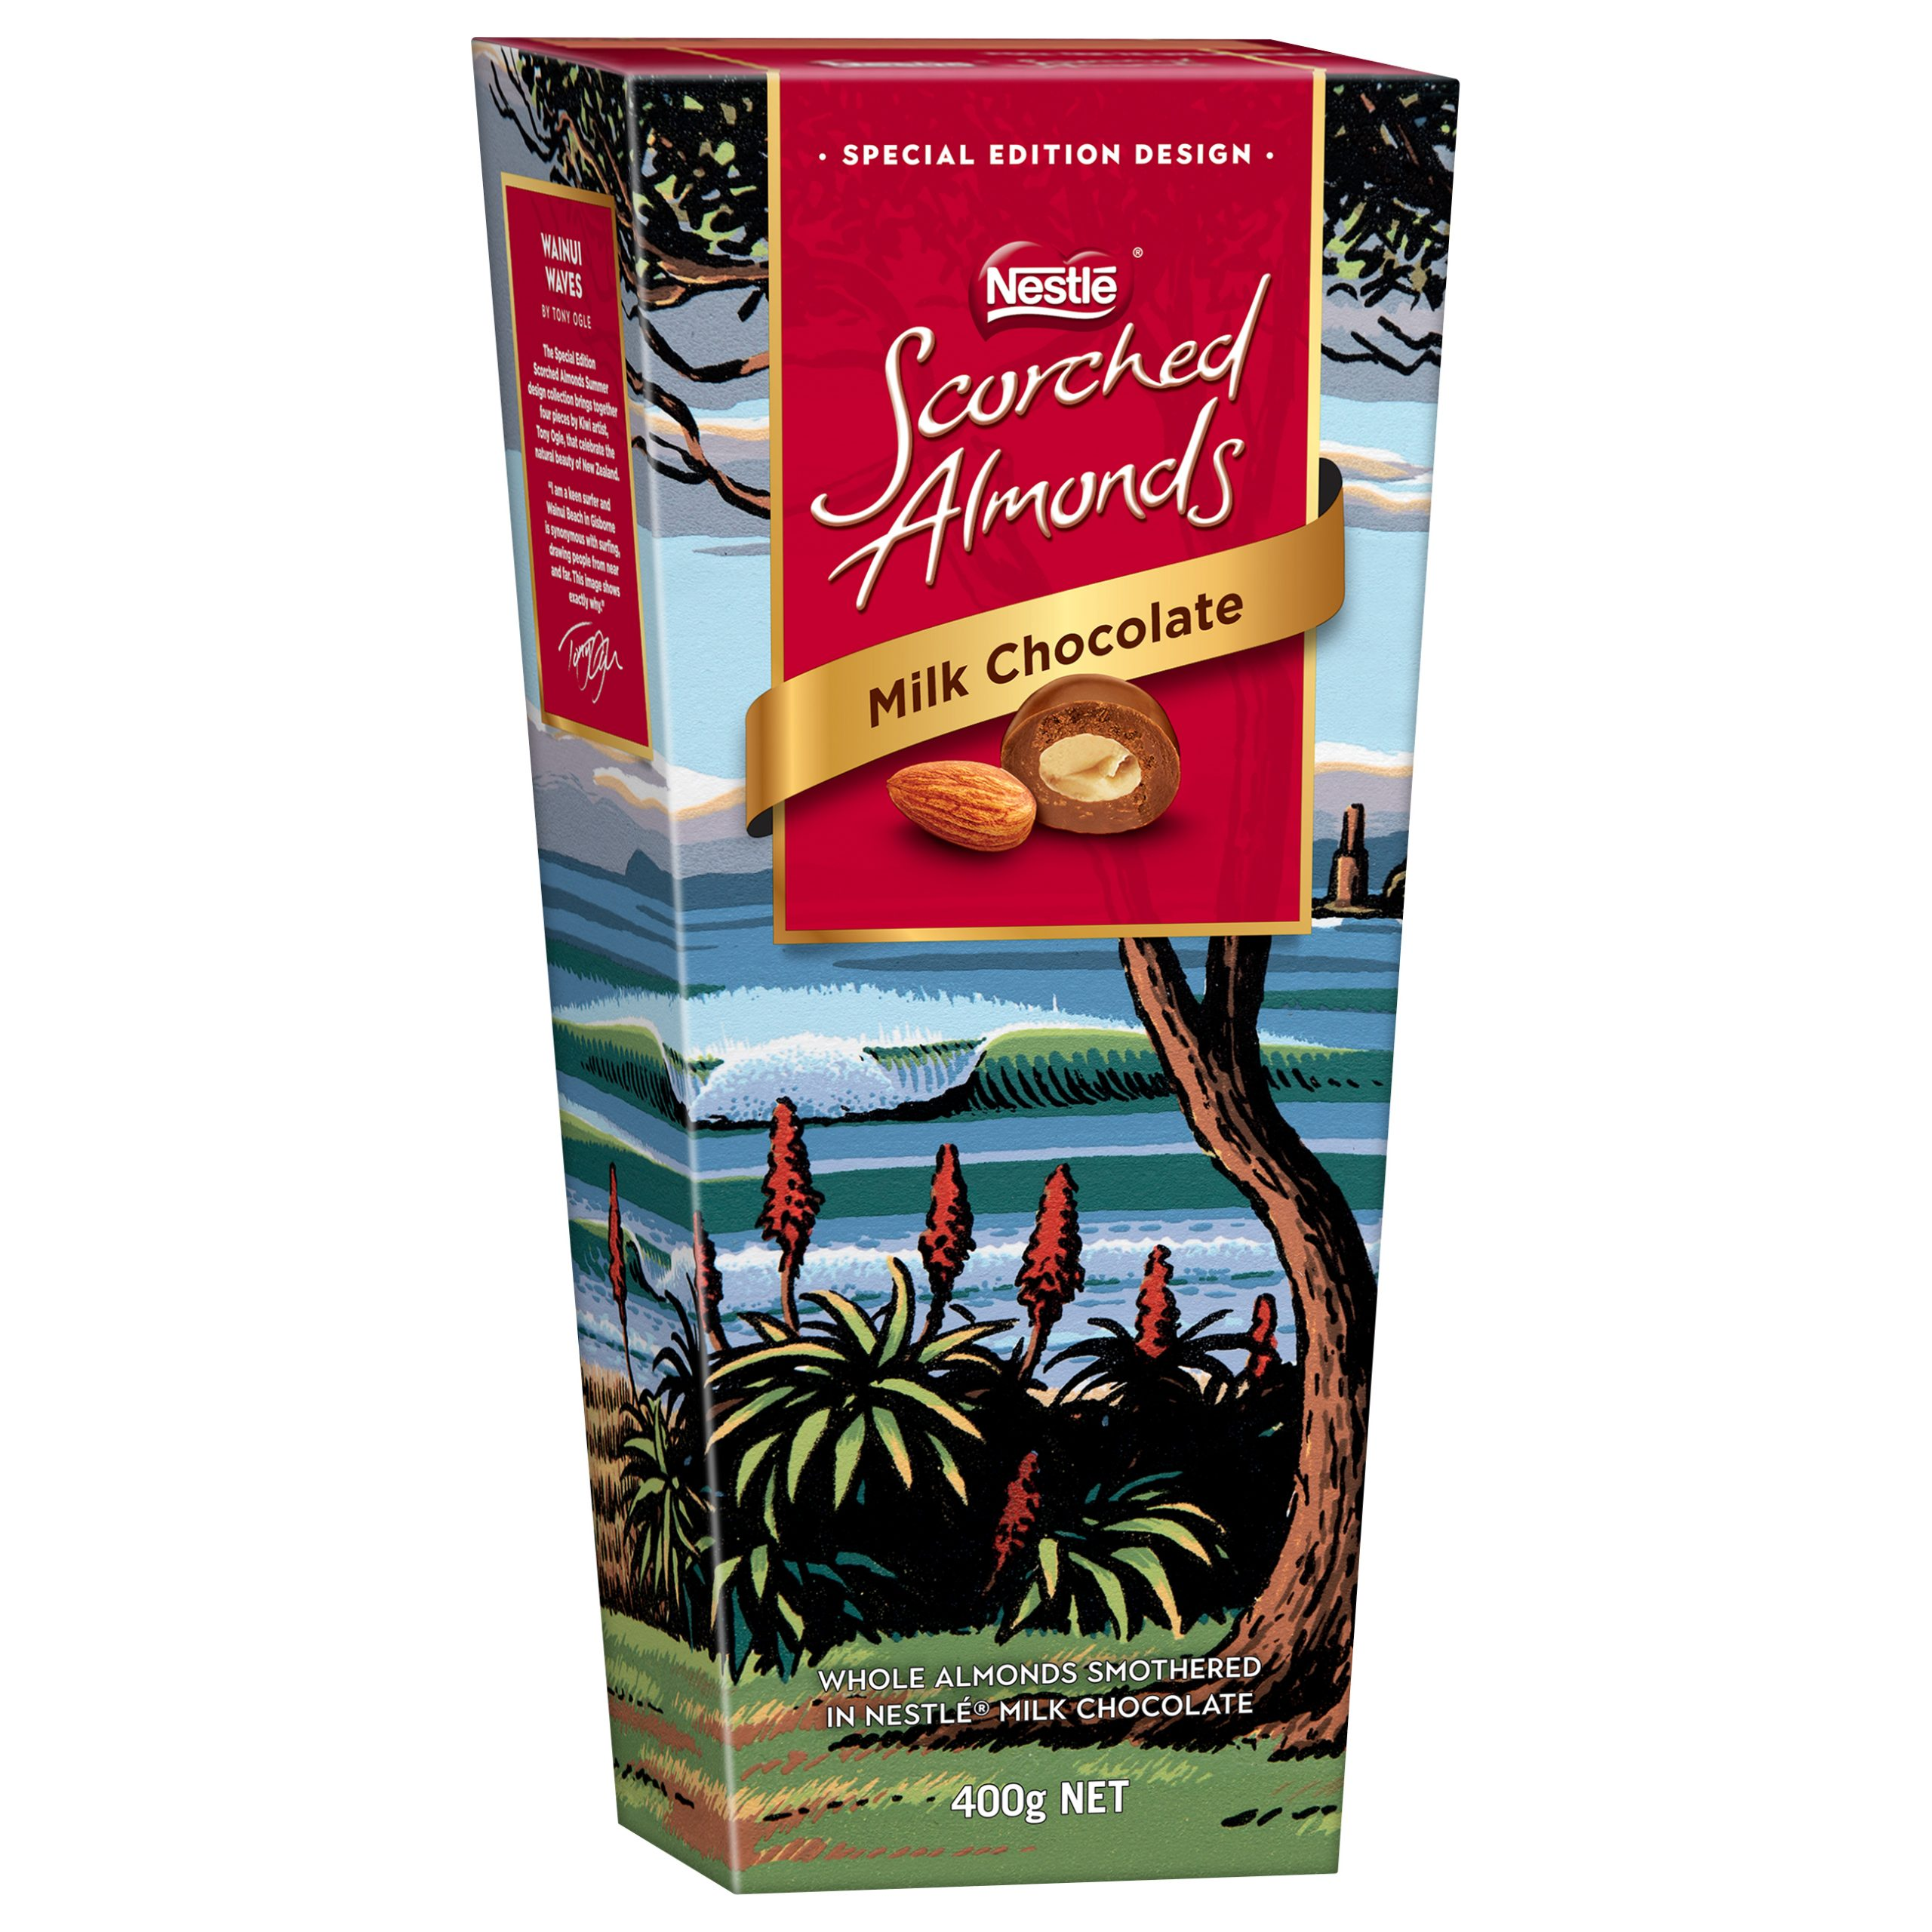 Scorched Almonds Summer Collection - Wainui Waves